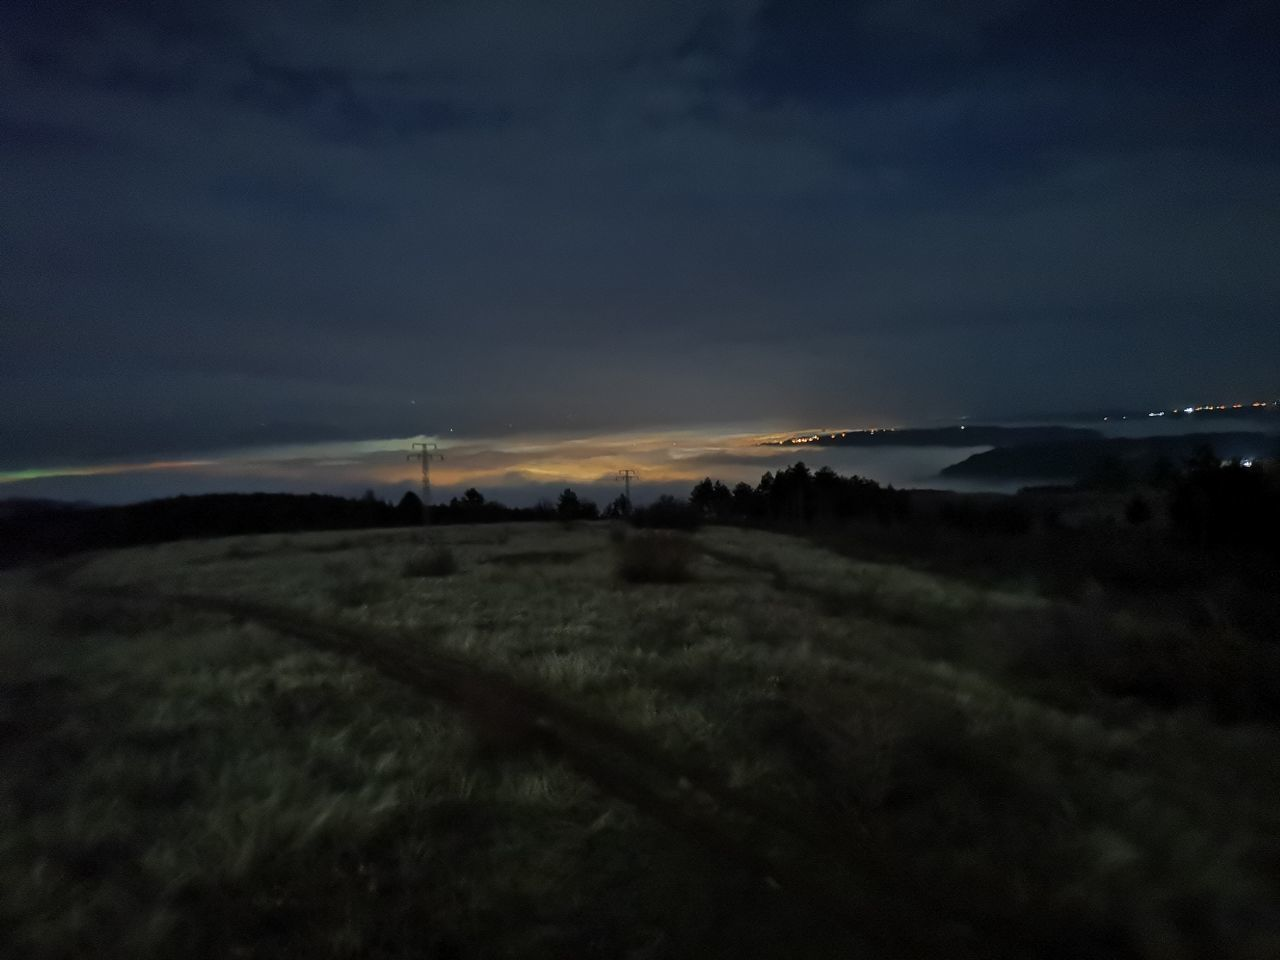 SCENIC VIEW OF LAND AGAINST SKY AT SUNSET